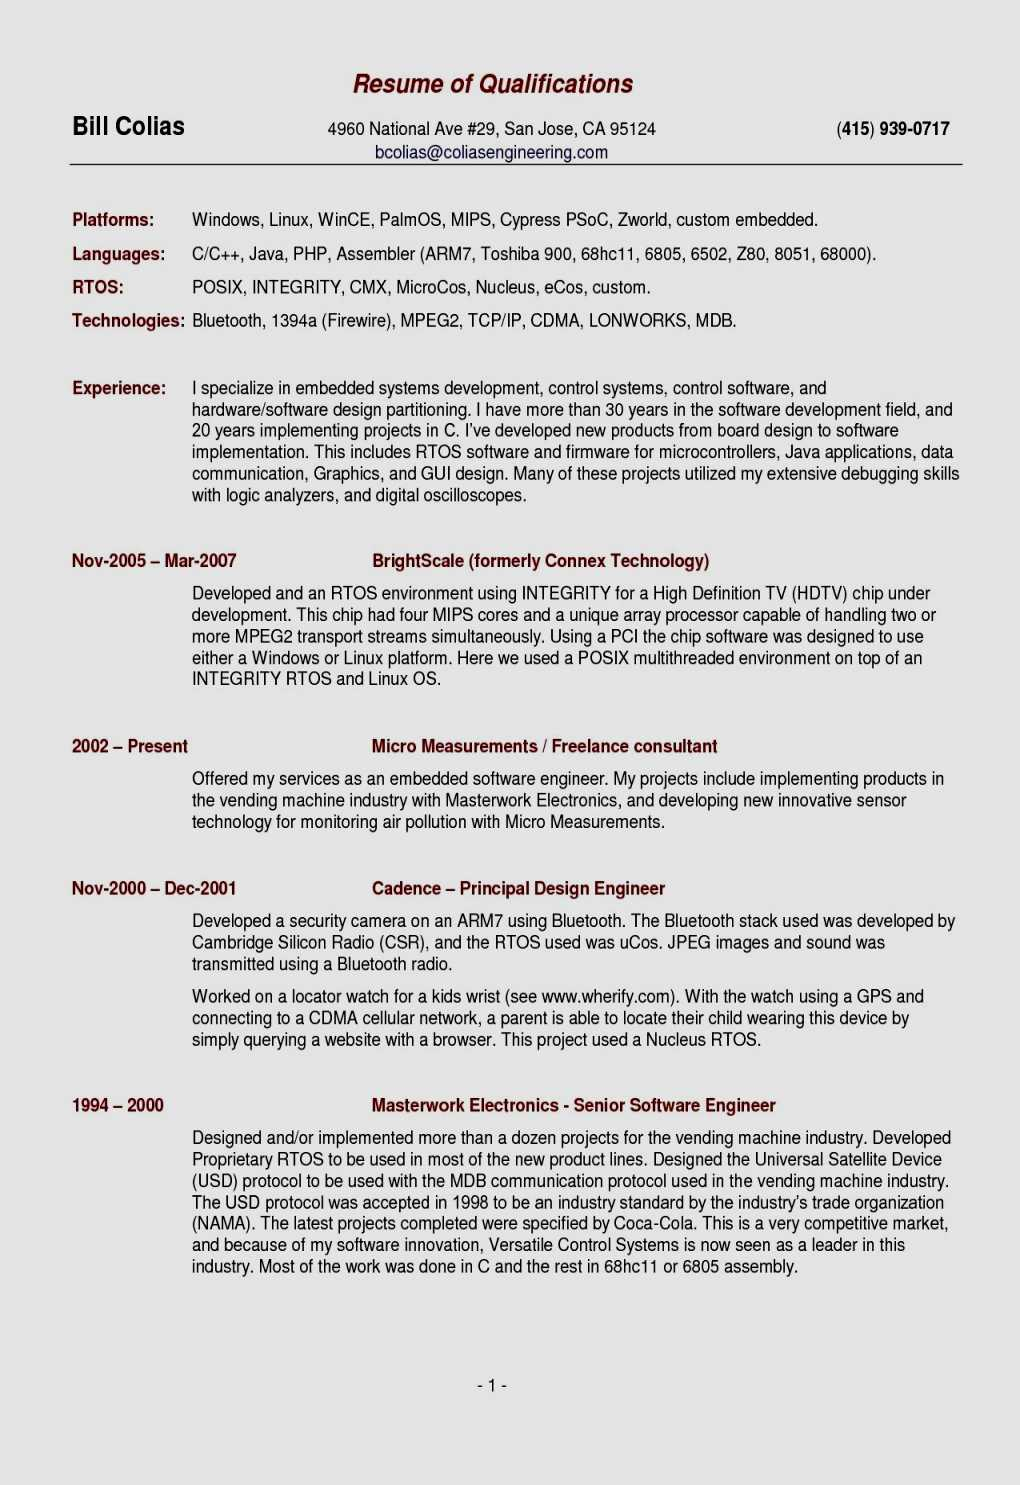 Free Professional Resume Templates - 20 Fresh Resume Template Professional Free Resume Templates